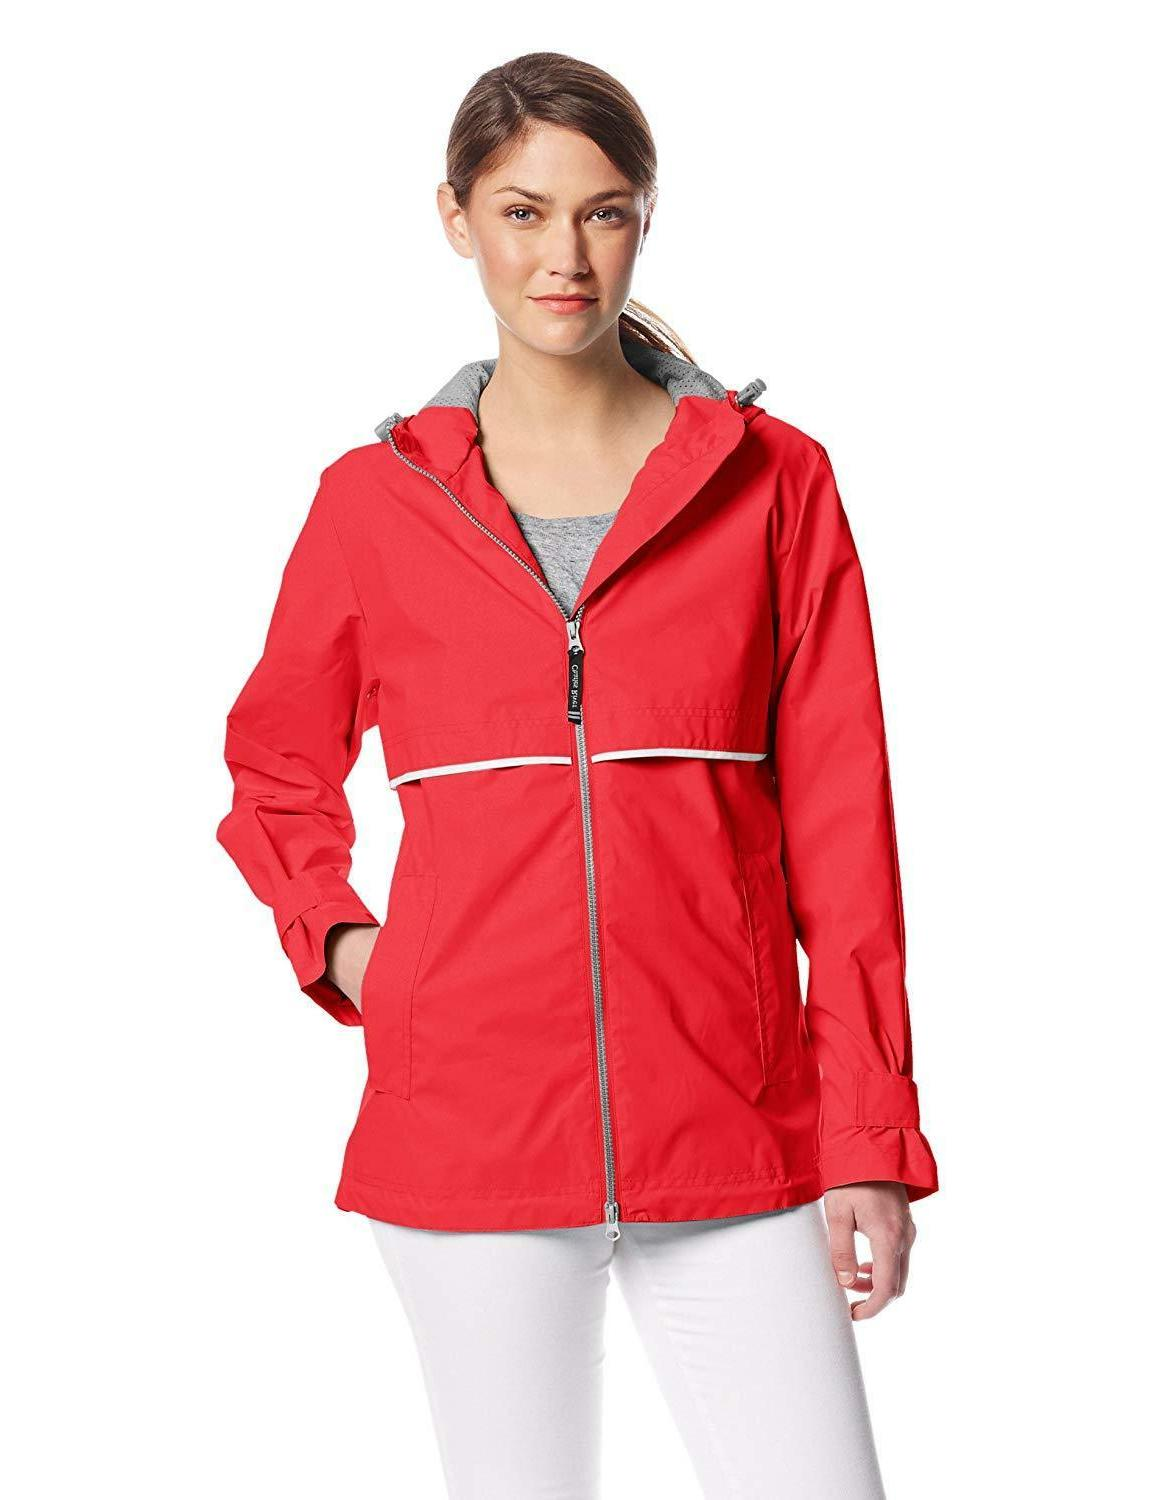 Charles River Apparel New Rain Jacket